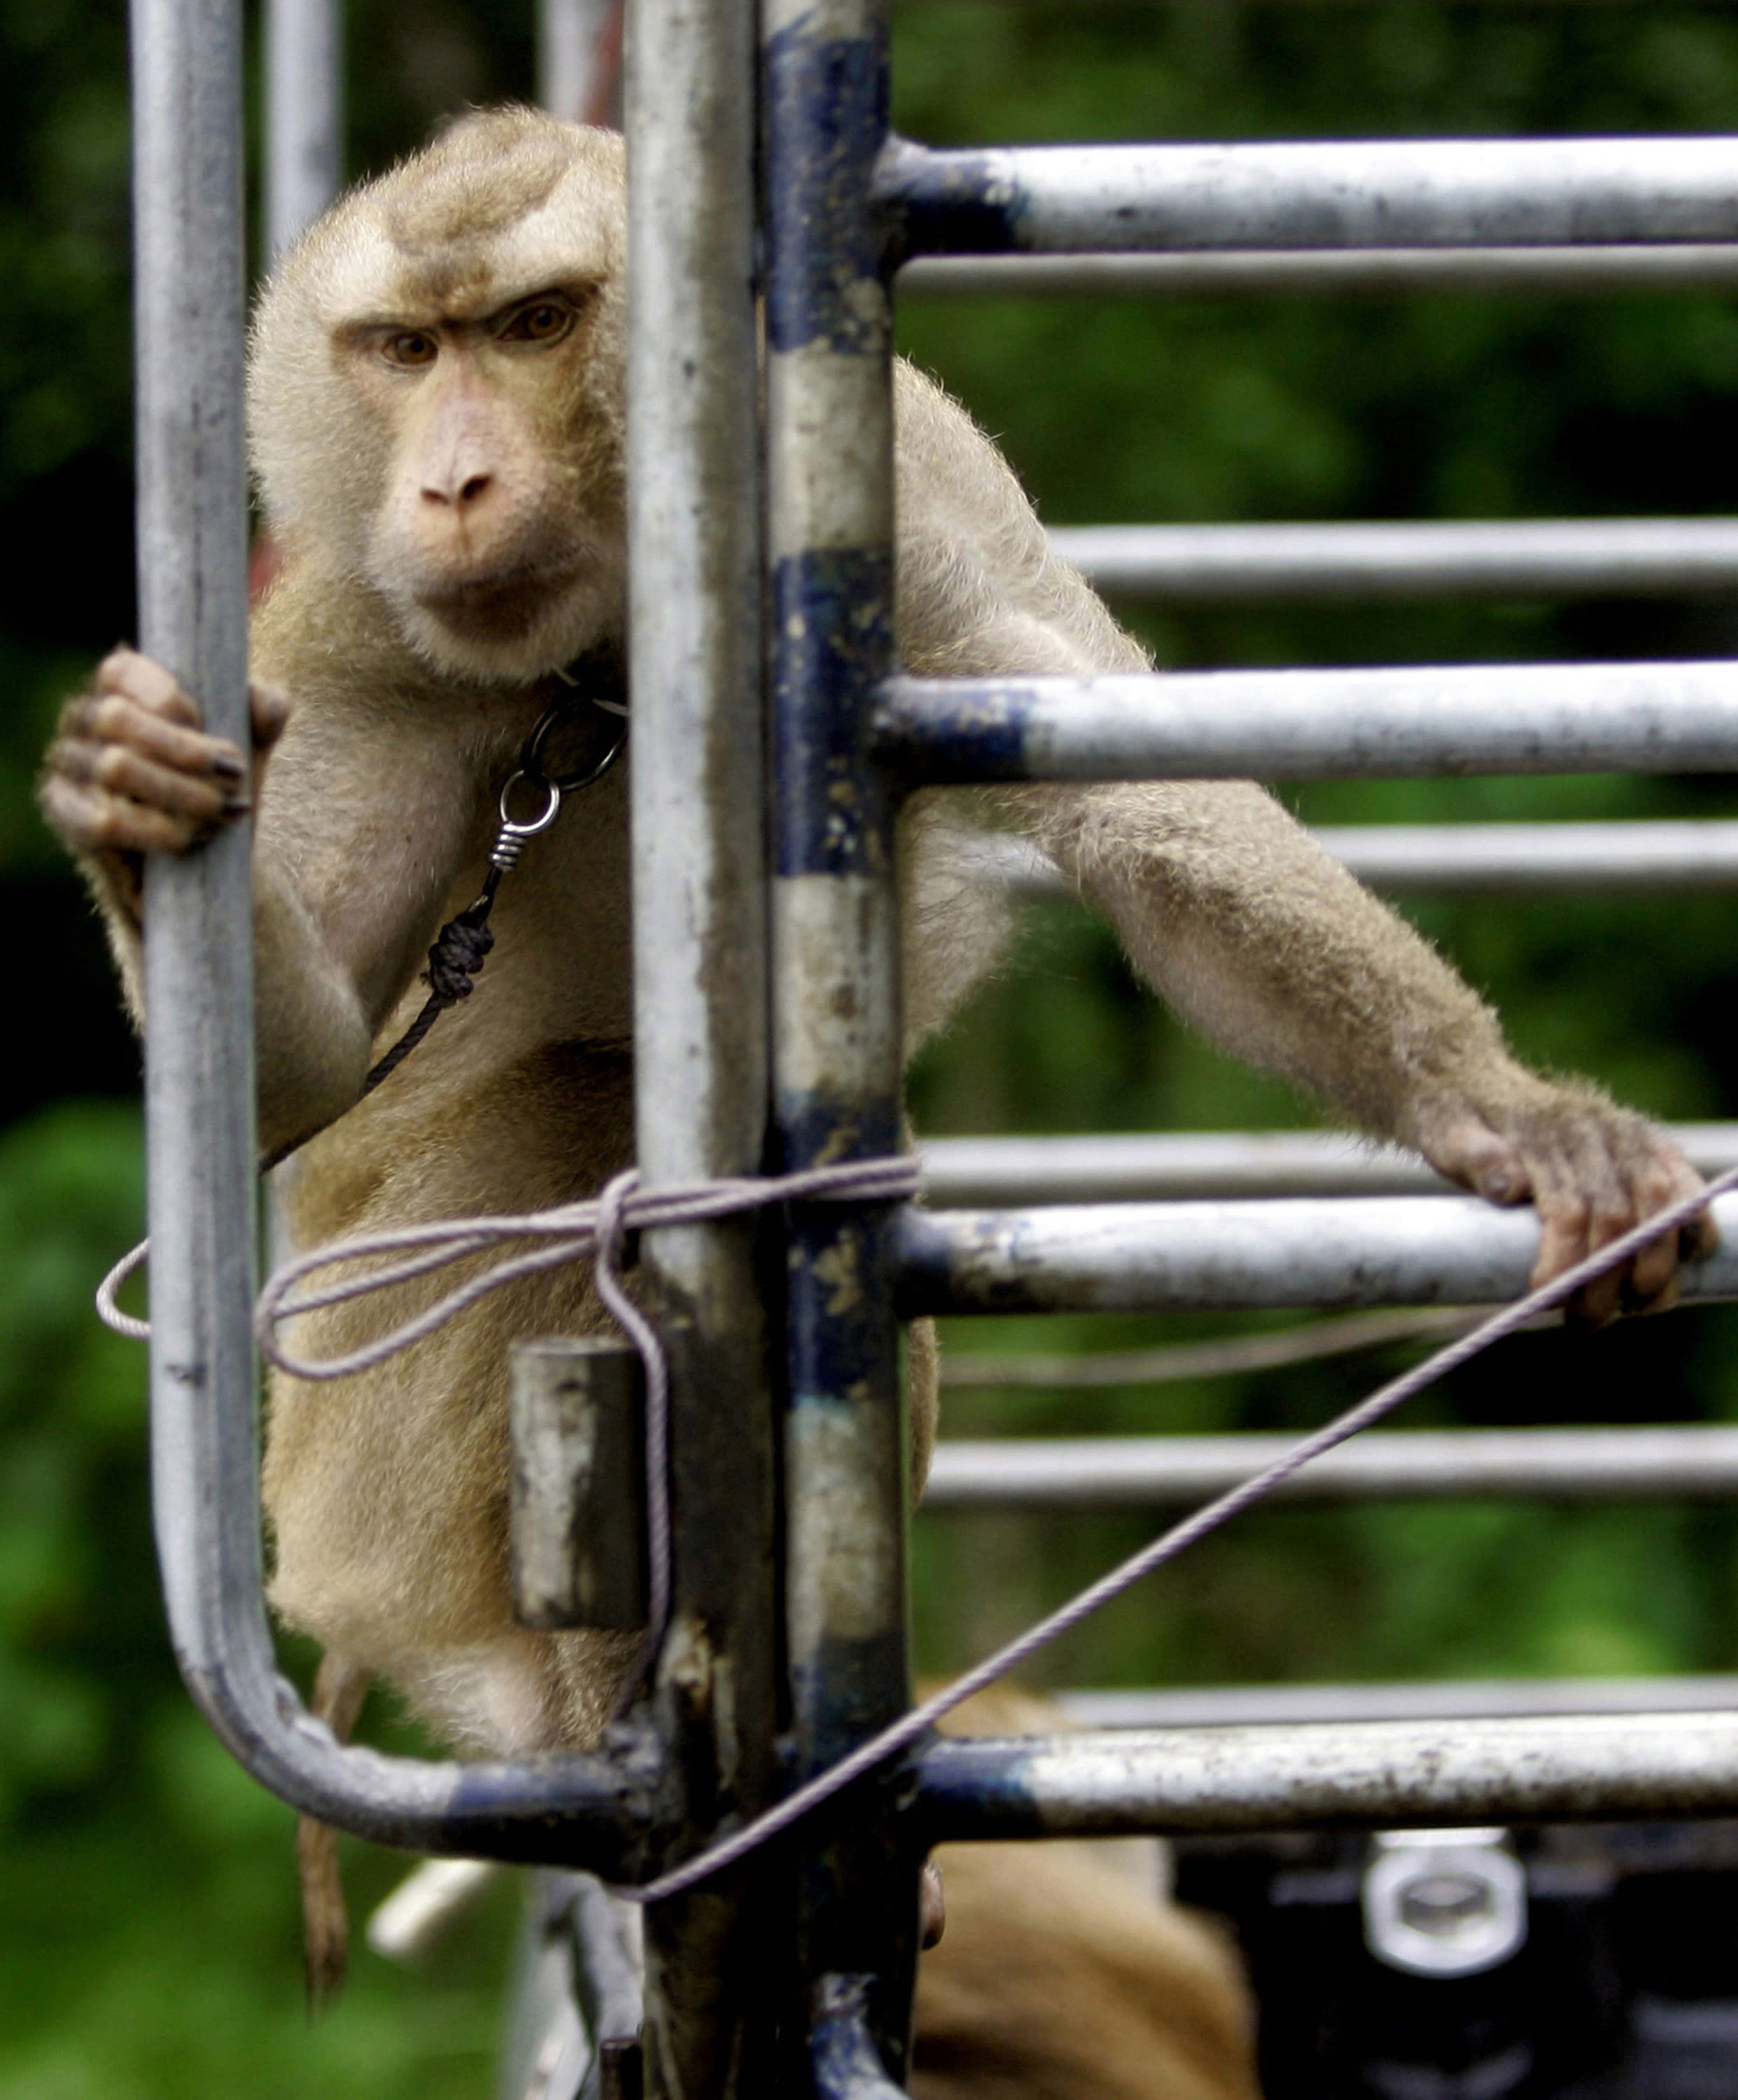 FILE - In this Friday, Nov. 3, 2006. file photo, a working monkey rides on the back of a pickup truck while heading to a coconut plantation in Chumphon province, southern Thailand. Thailand's coconut-picking monkeys, long a popular tourist attraction, have become a sensitive trade issue as British activists claim the animals are abused and push for a boycott of the nation's coconut products. (AP Photo/Apichart Weerawong)